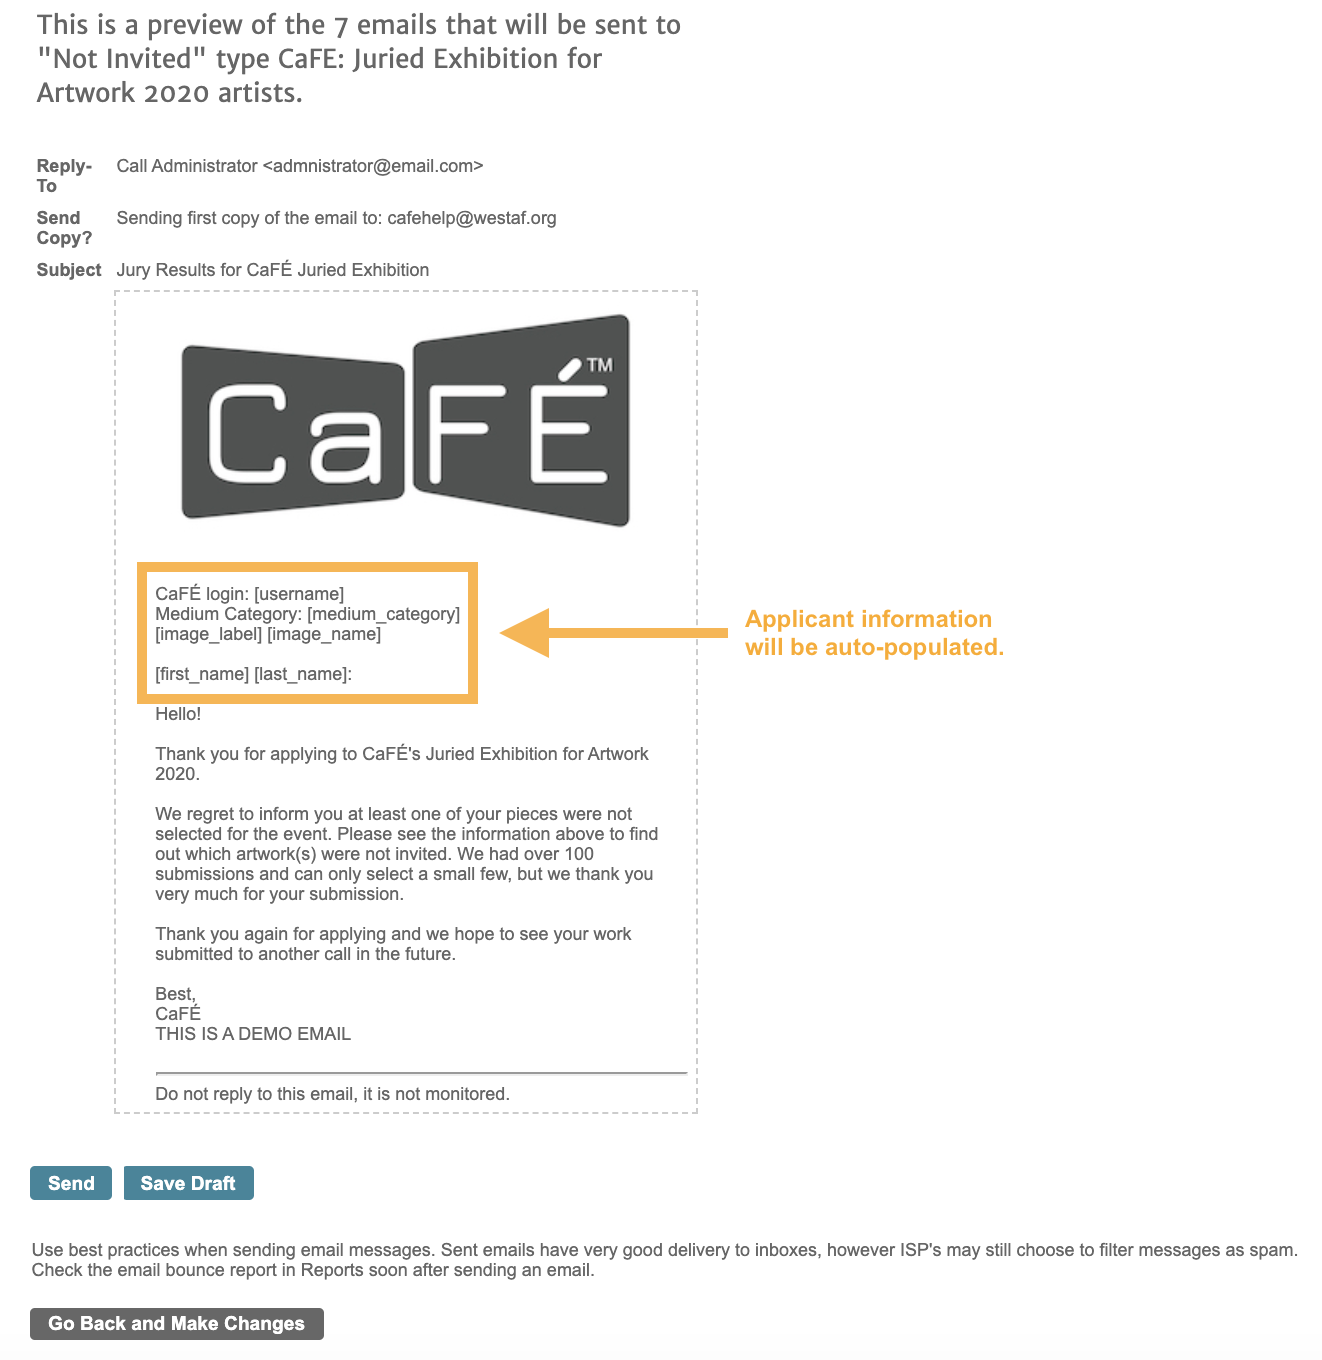 Screenshot of the email preview with a box around the auto-populated information.